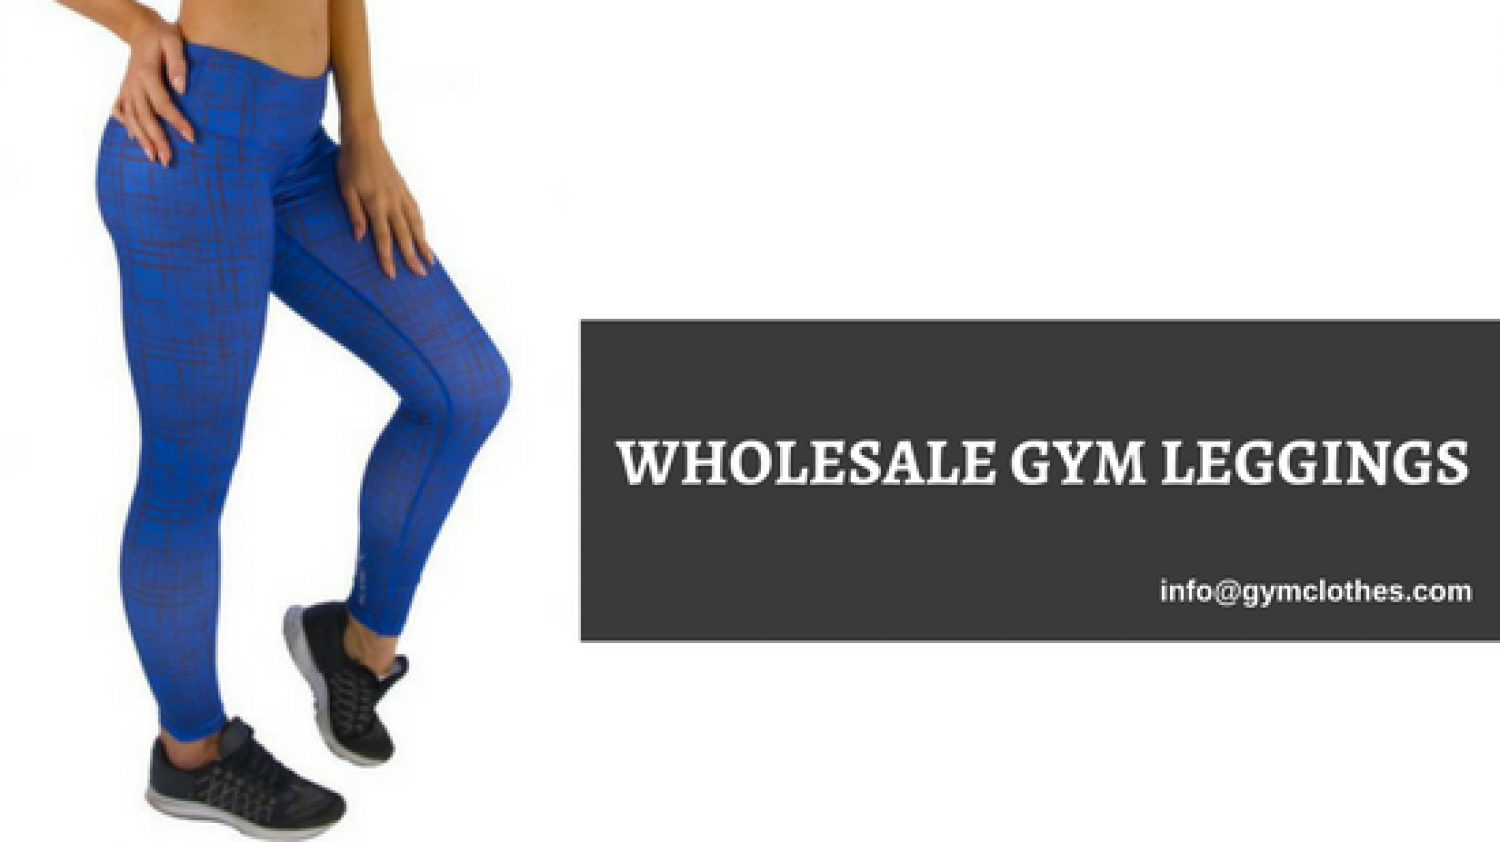 Gym Clothes Is The Celebrated Wholesale Gym Leggings Online Clothing Store  Infographic